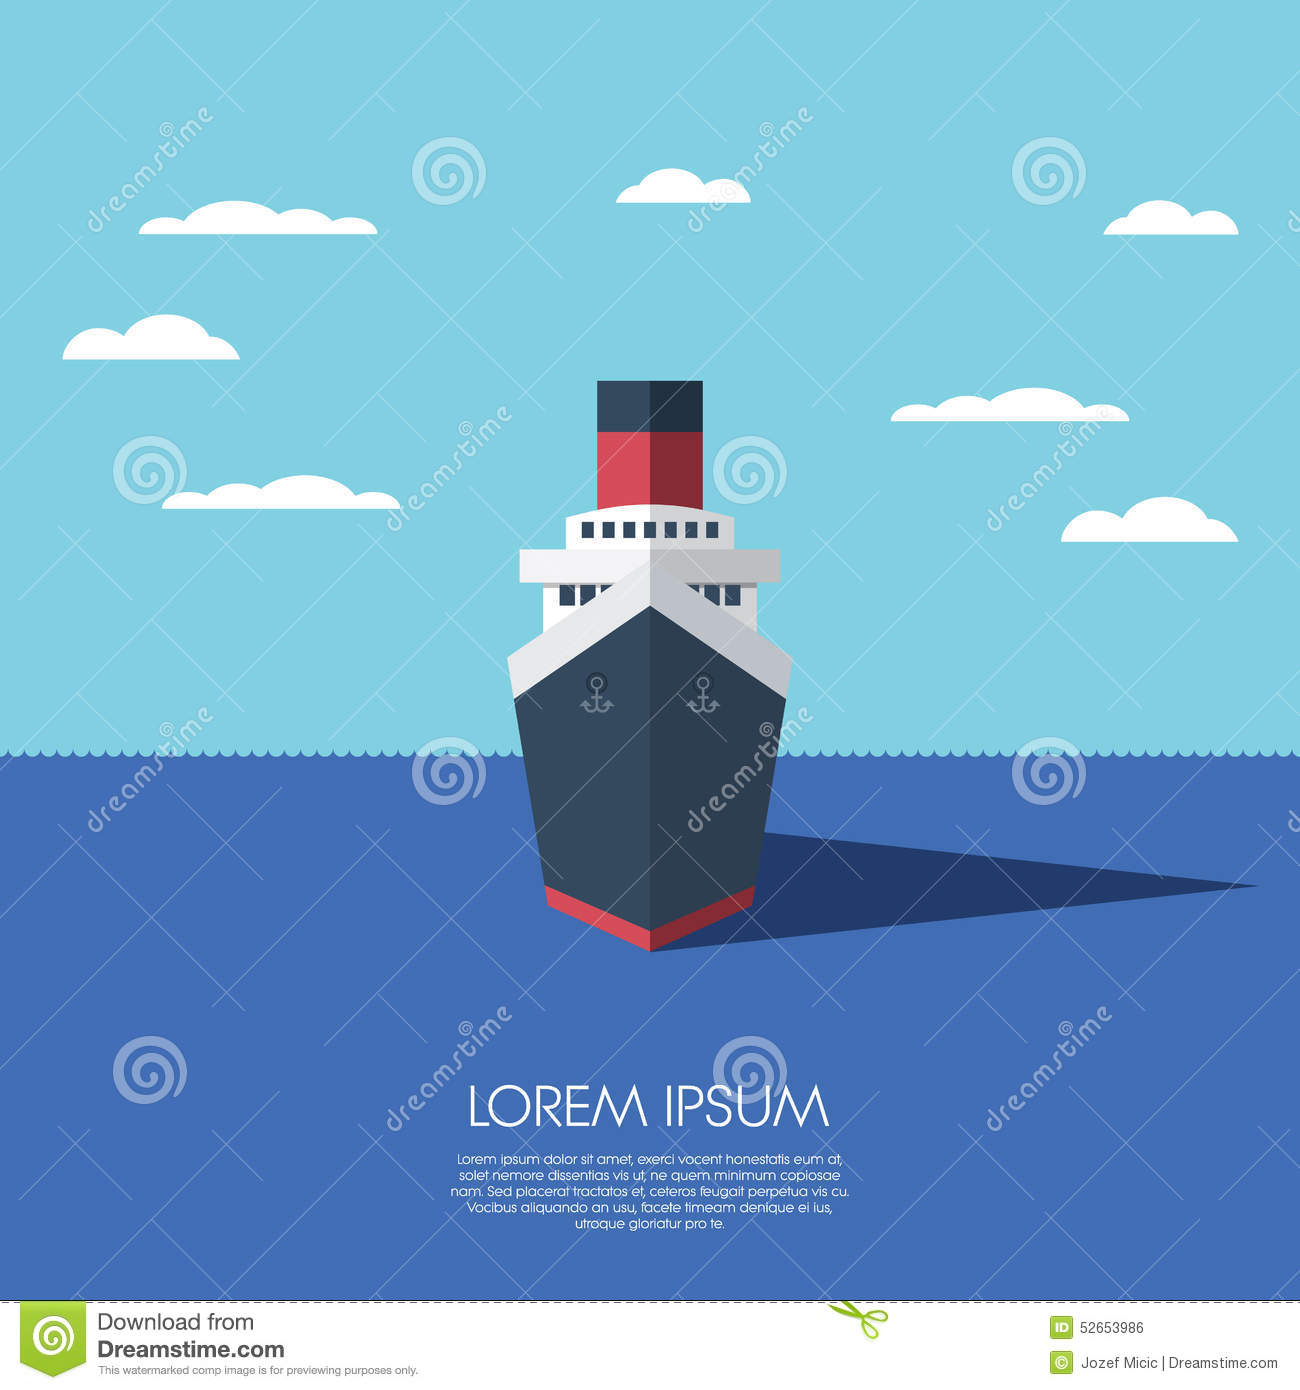 Modern Ship Design : Cruise ship holiday vacation modern flat design stock